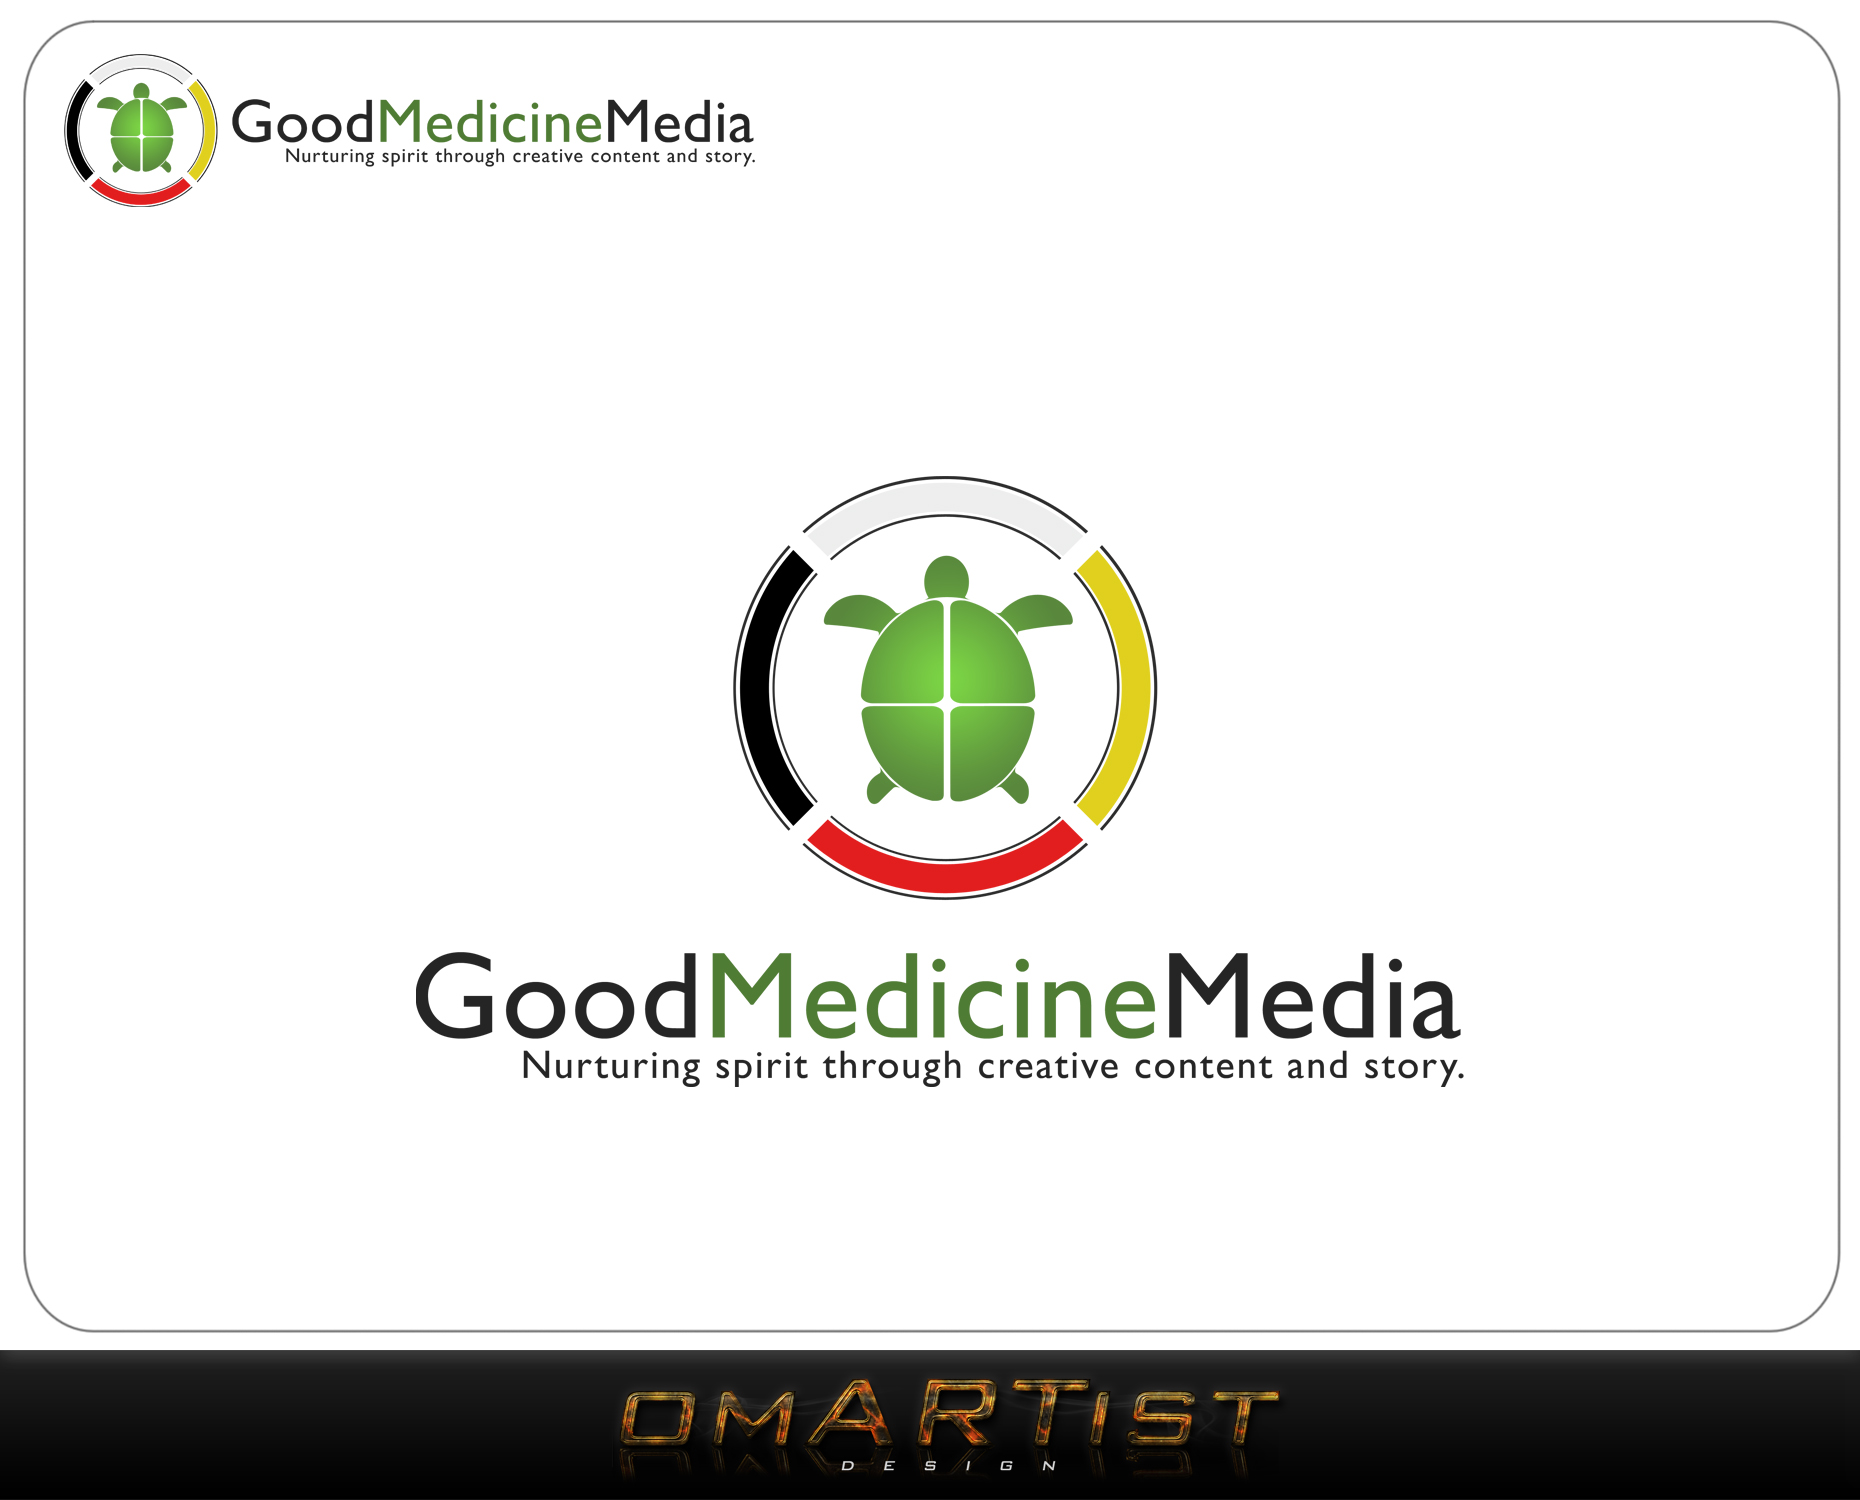 Logo Design by omARTist - Entry No. 189 in the Logo Design Contest Good Medicine Media Logo Design.